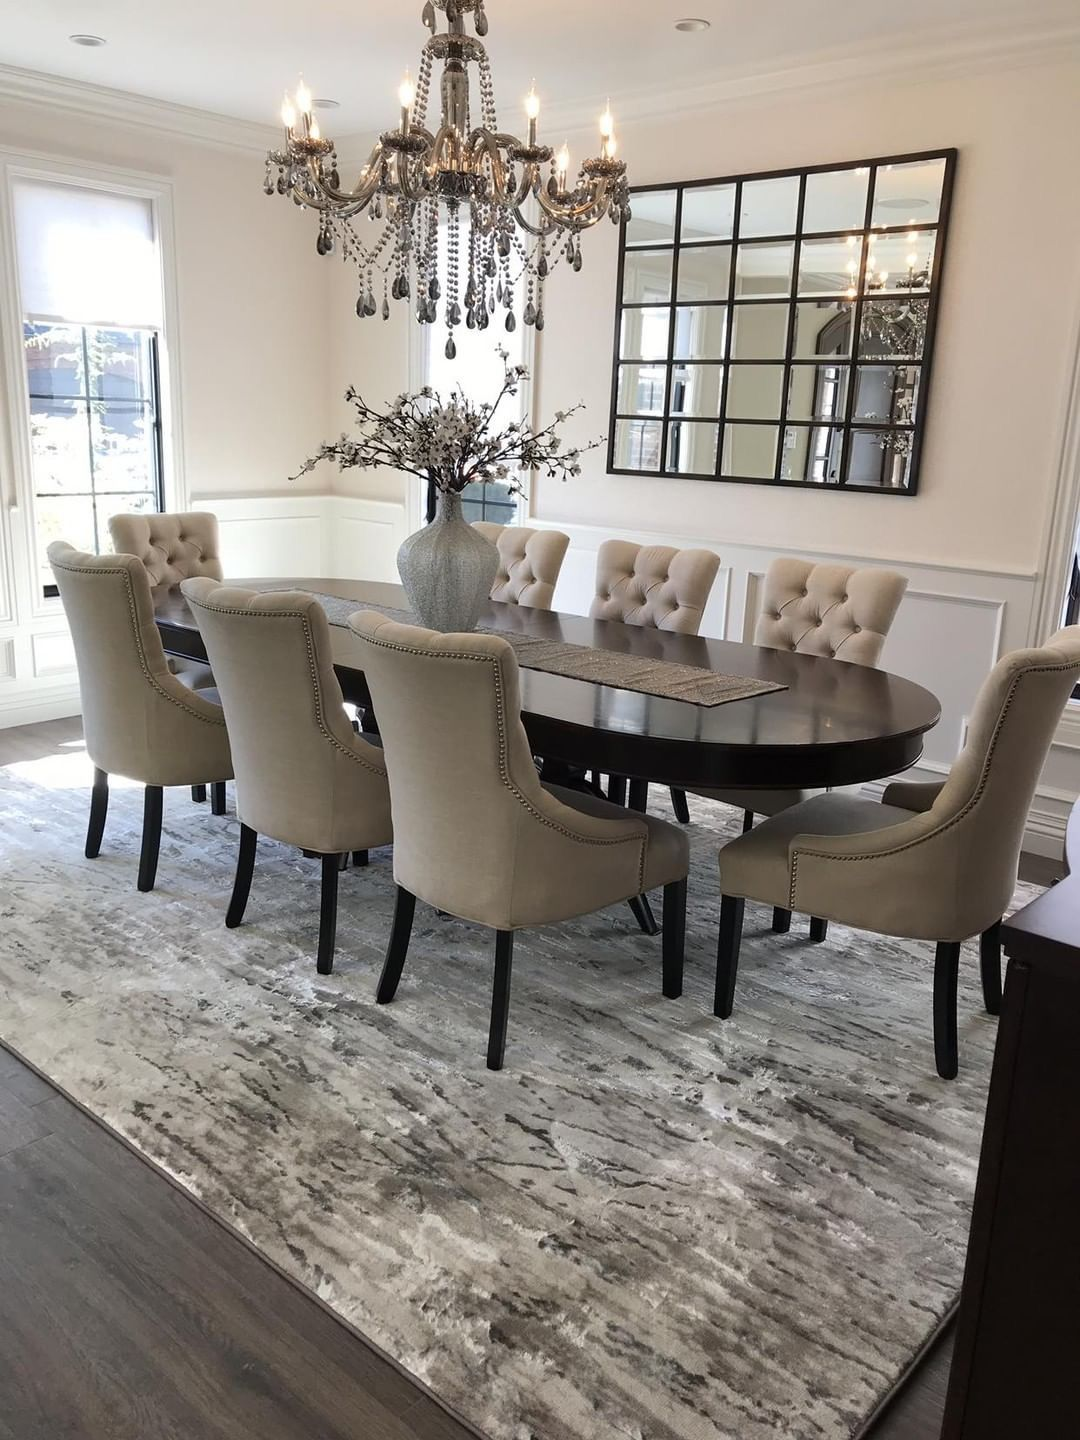 Our Beautiful Ripplewater Bound Carpet In Color Ecru Installed In This Stunning Dining Room Visit Us Elegant Dining Room Luxury Dining Room Dinning Room Decor